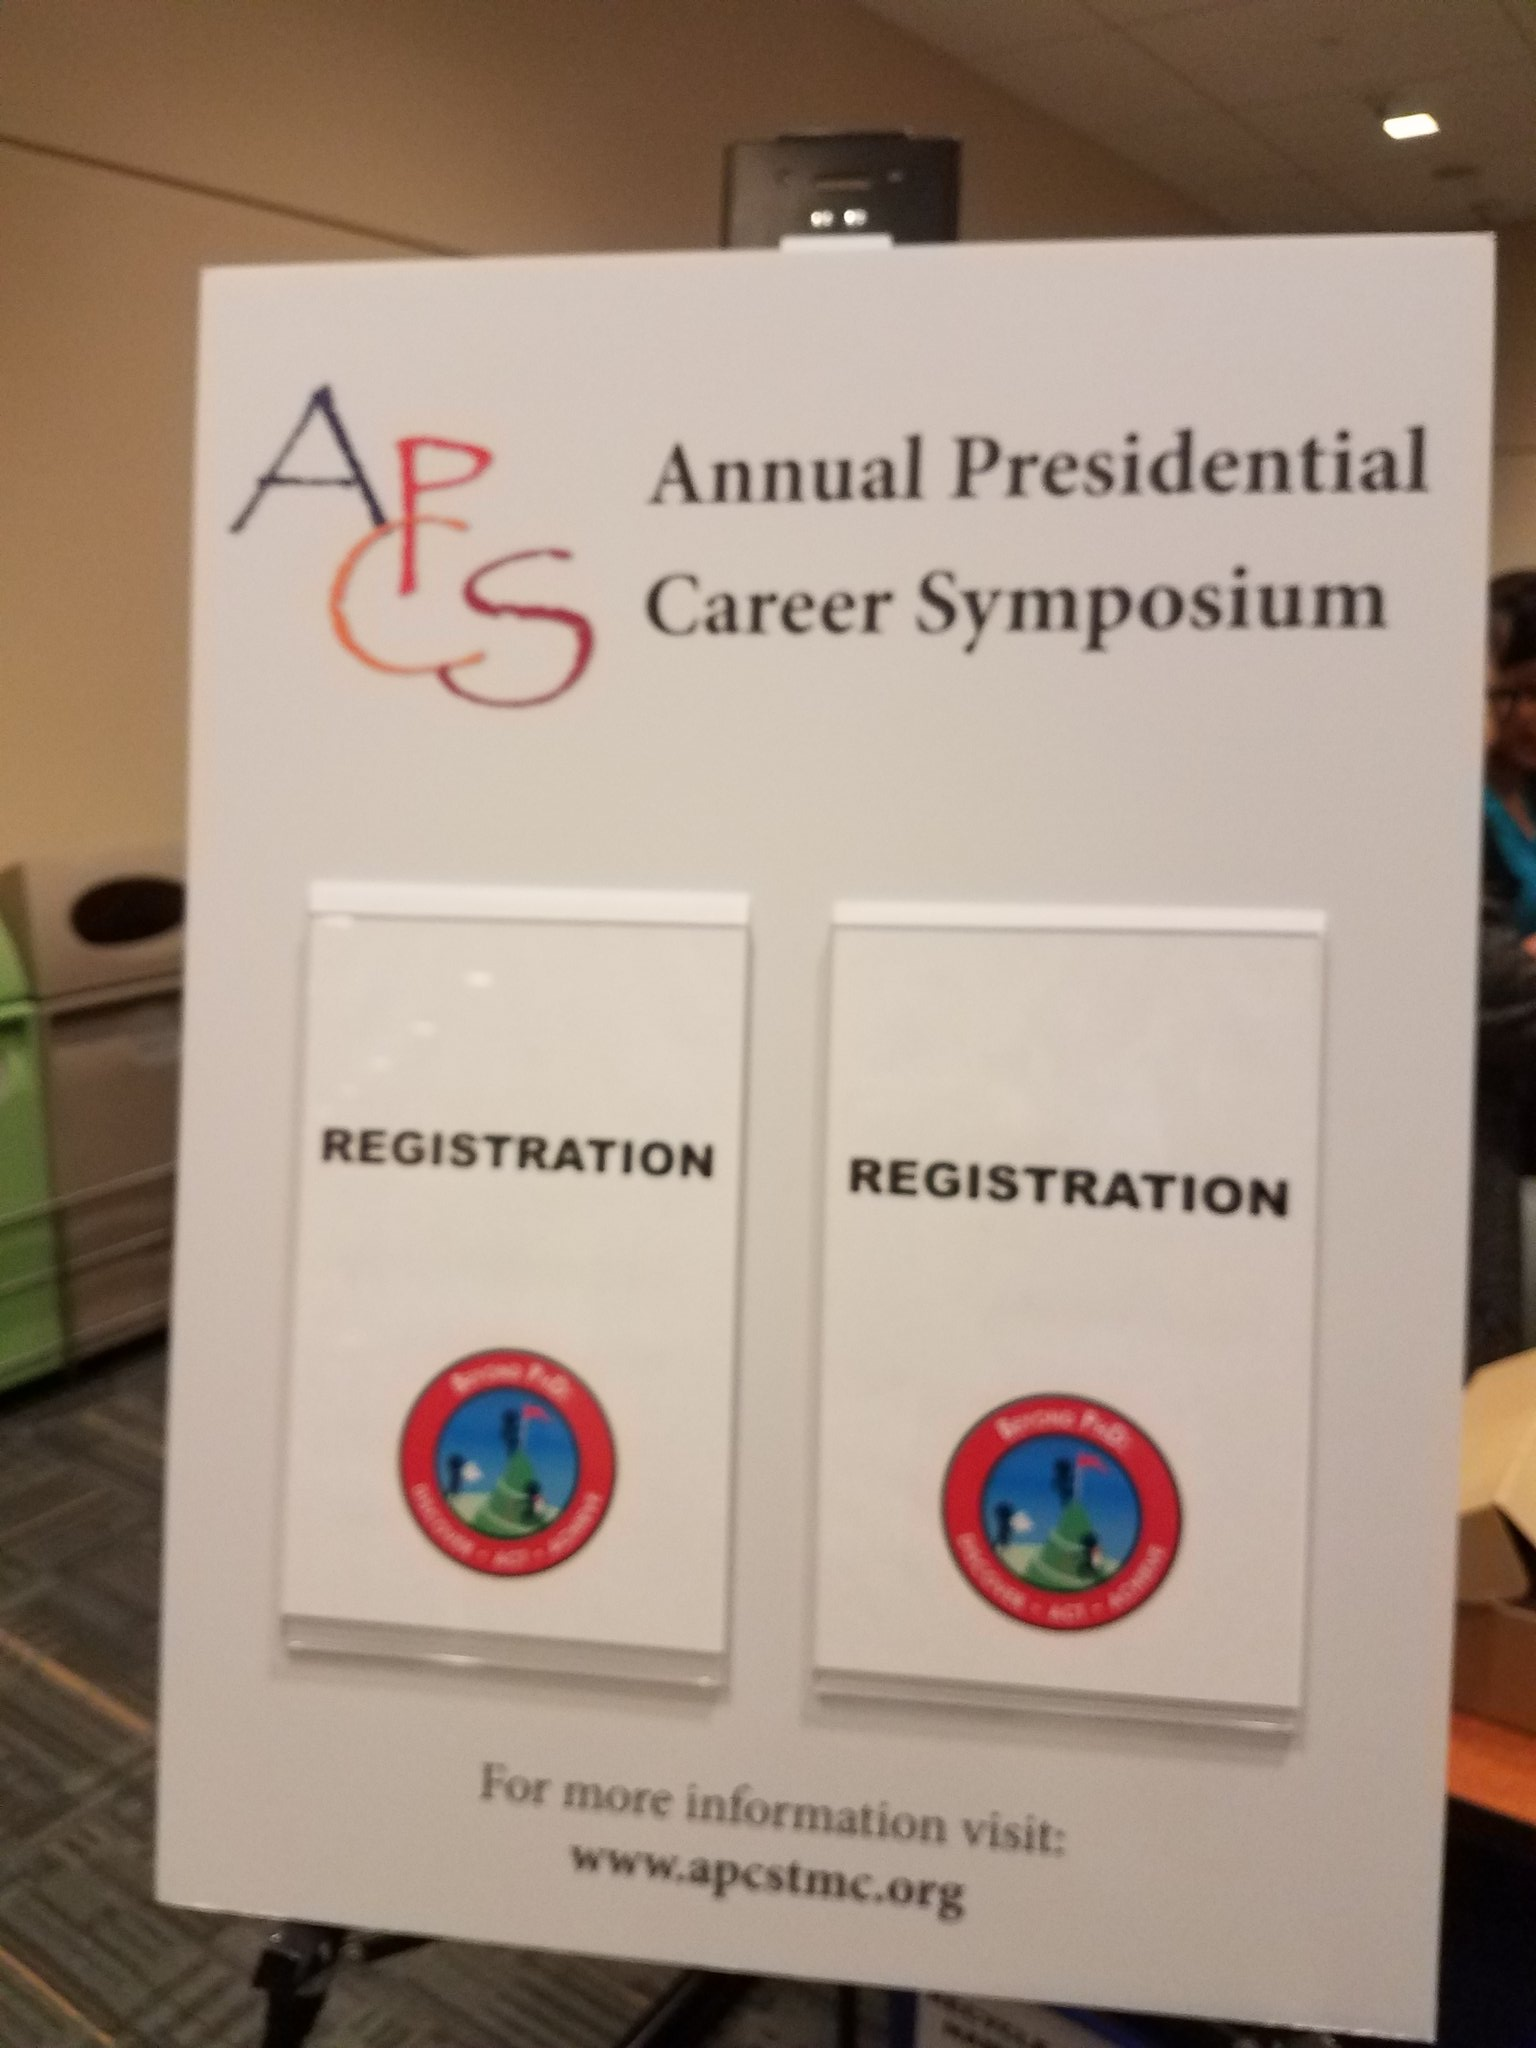 @tmcapcs @RakeshPerani 6th Annual Presidential Career Symposium! #apcs2017 https://t.co/RNgWRW7Mco